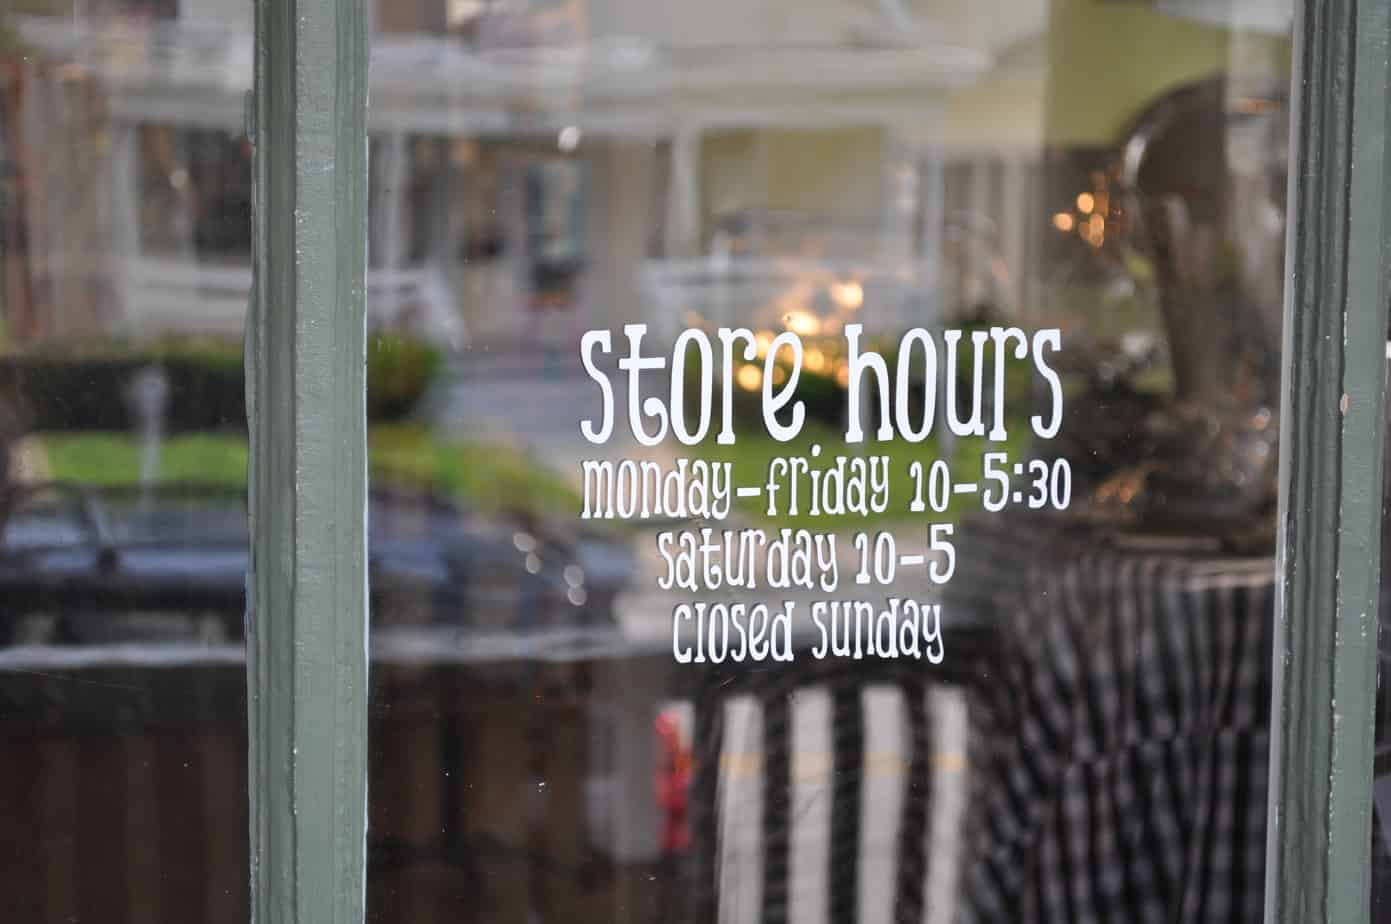 Take a Virtual Tour of Peggy's Gifts & Accessories store on Clay Ave.